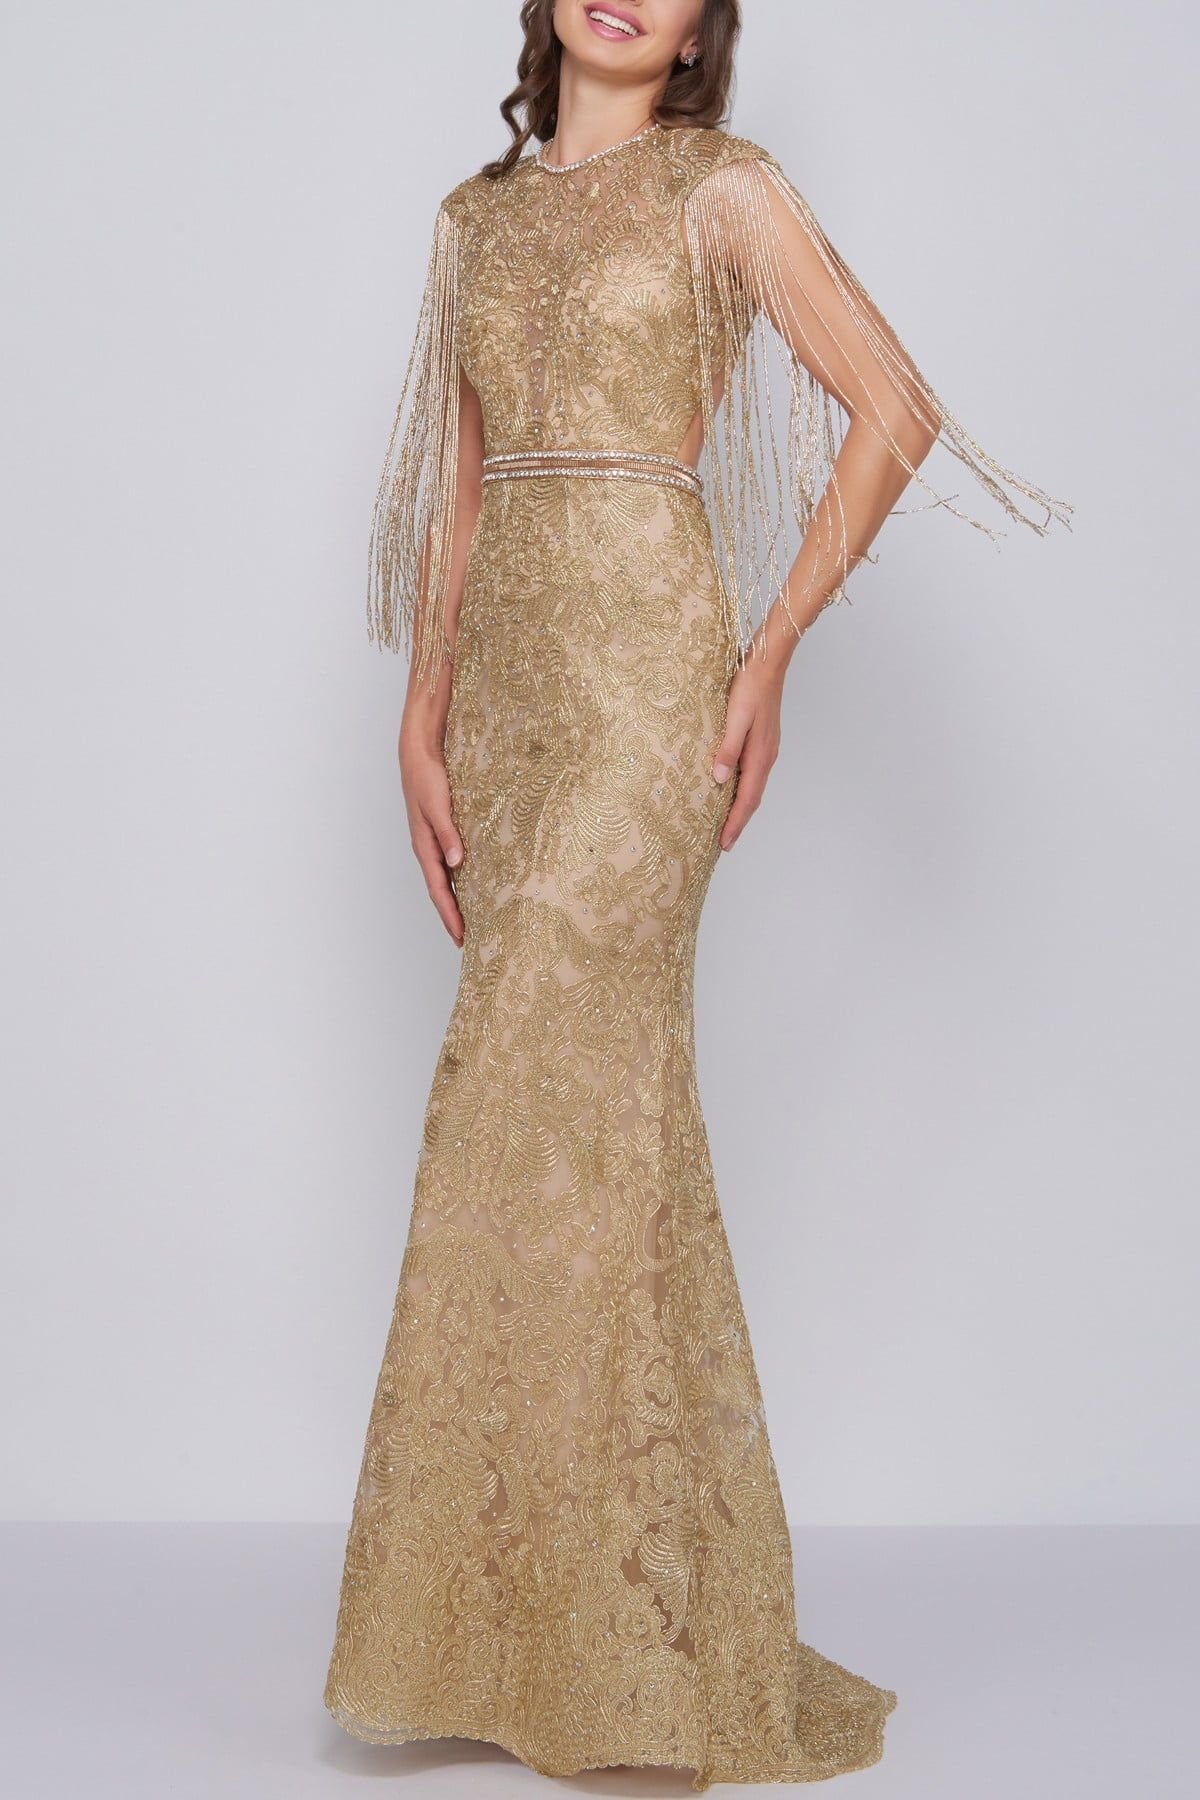 Mac Duggal Novelty Fringe And Lace Trumpet Gown Nordstrom Rack Trumpet Gown Formal Dresses Dresses [ 1800 x 1200 Pixel ]